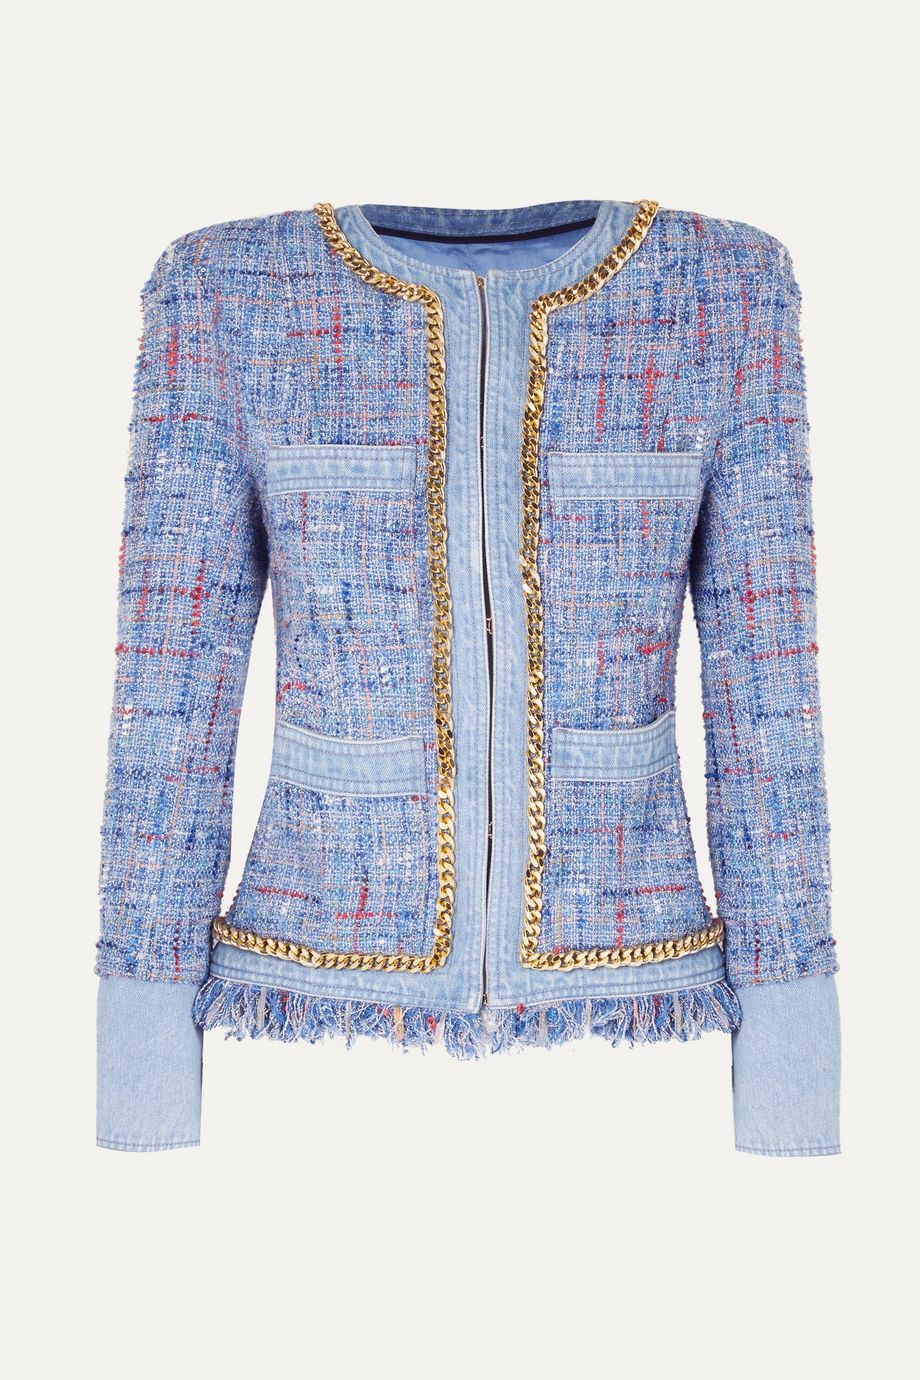 Balmain Chain-embellished cotton-tweed and denim blazer